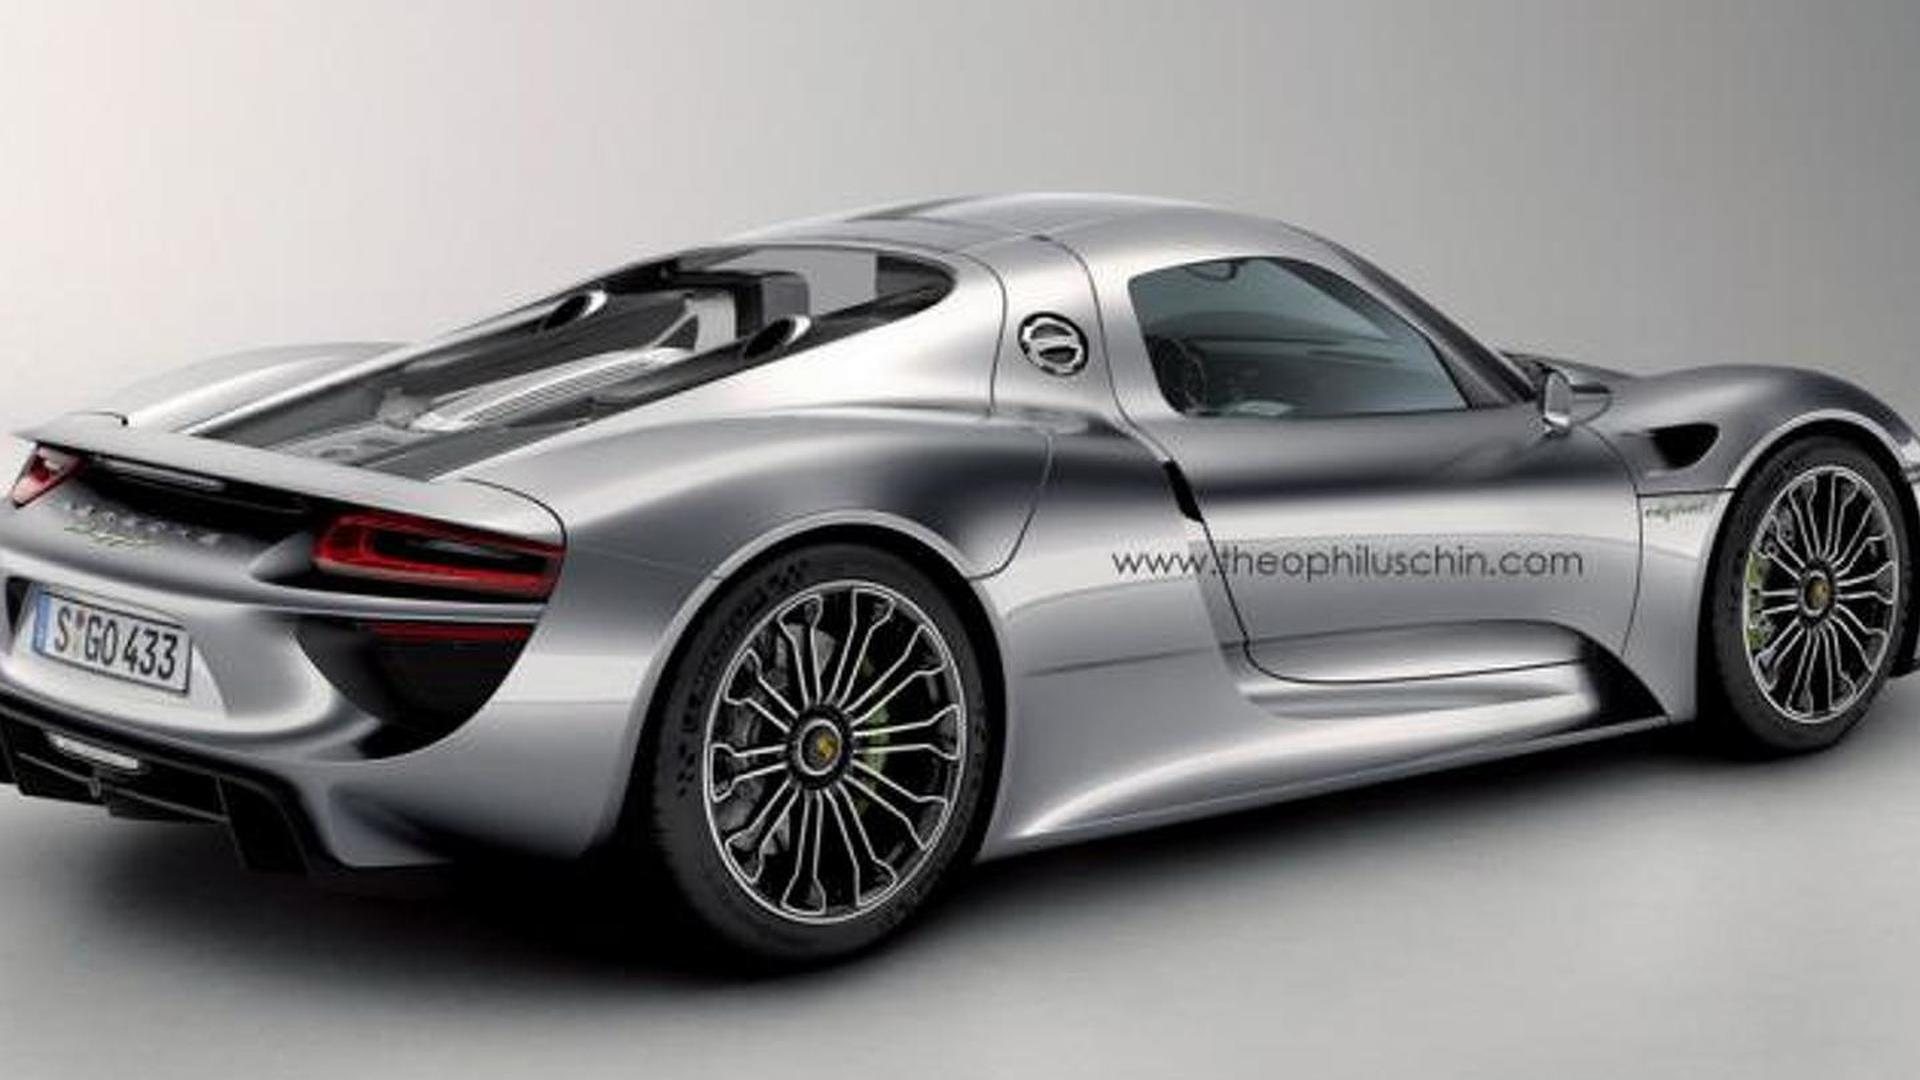 Porsche 918 Coupe gets rendered